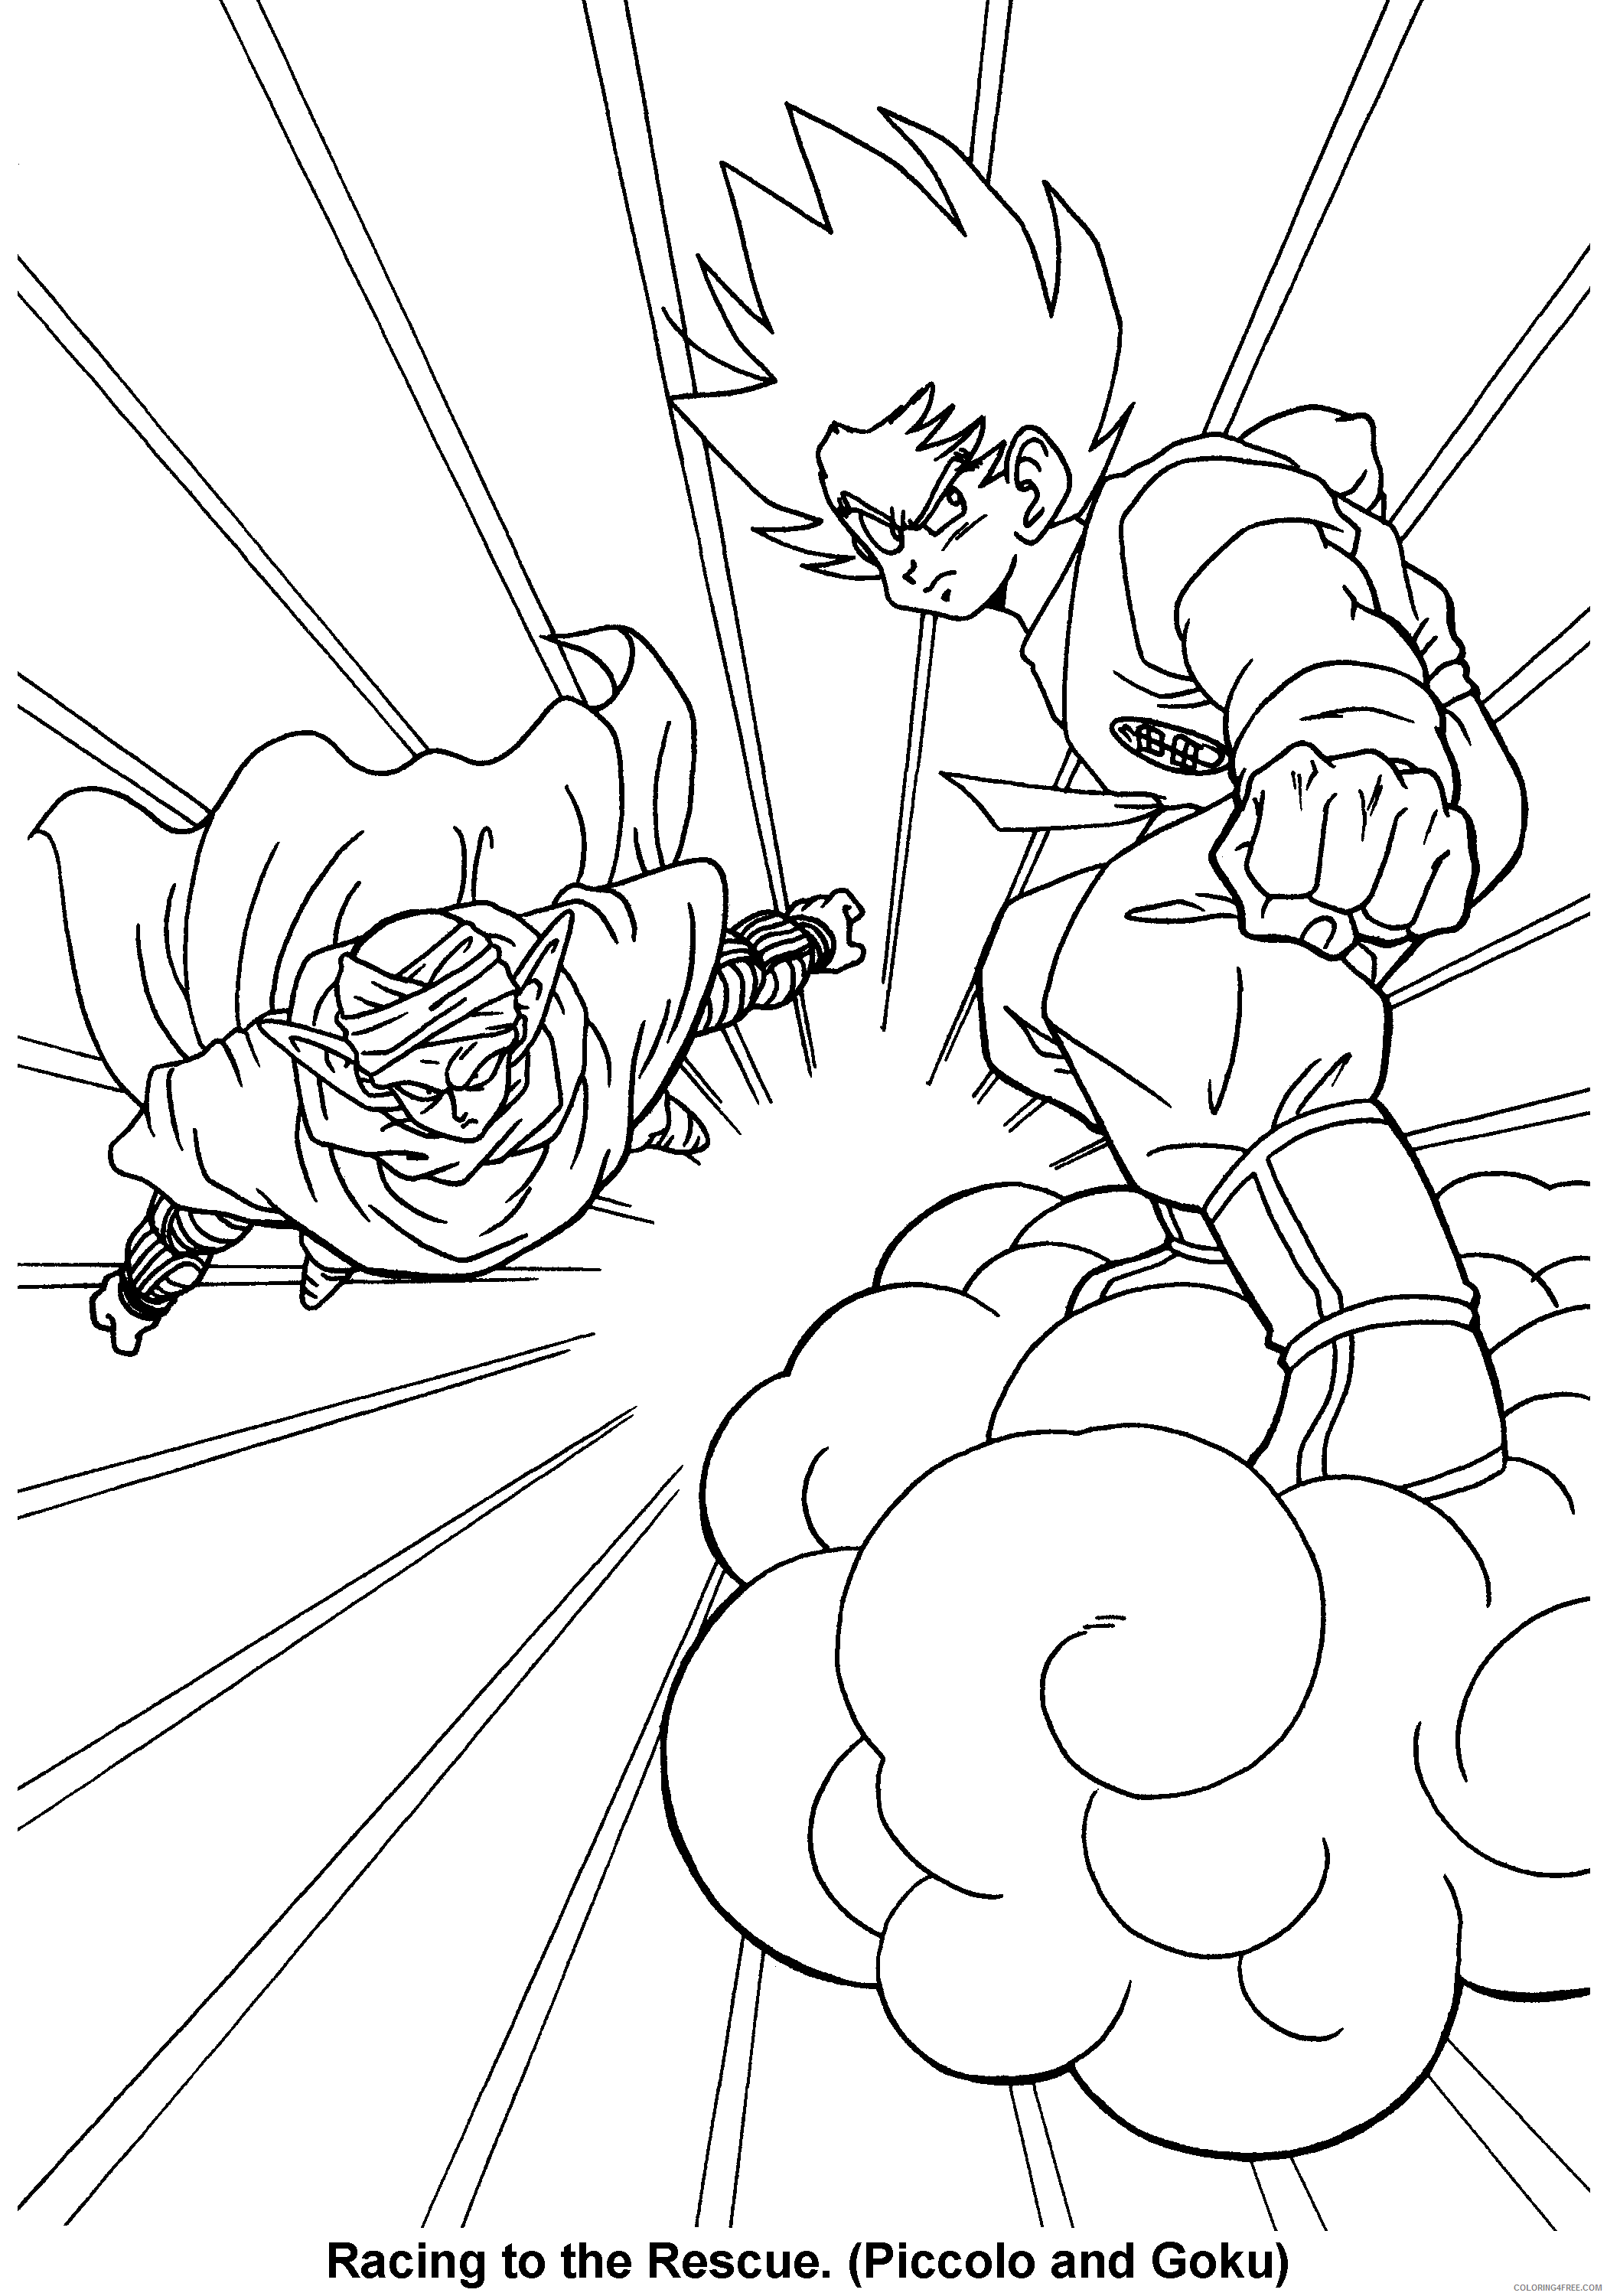 059 dragon ball z racing to the rescue piccolo and goku Printable Coloring4free